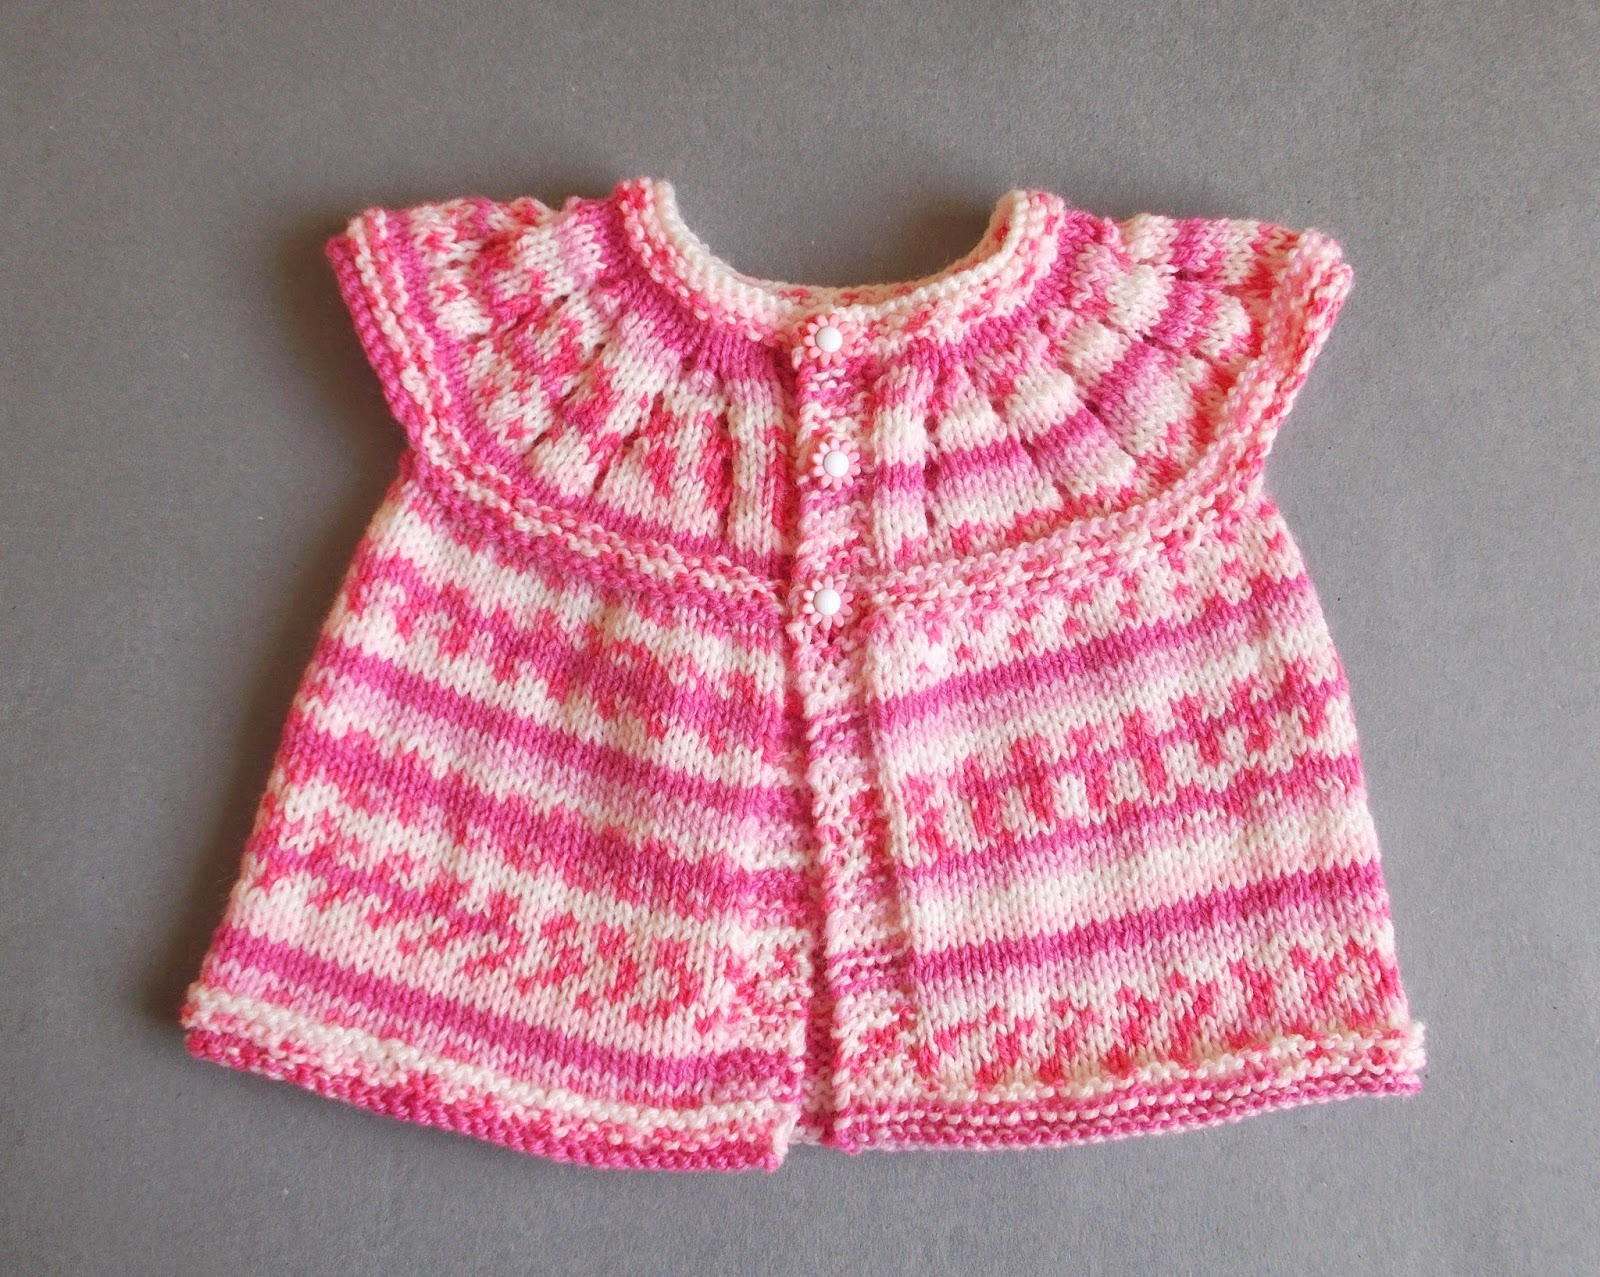 Made By Marianna My Free Knitting Patterns